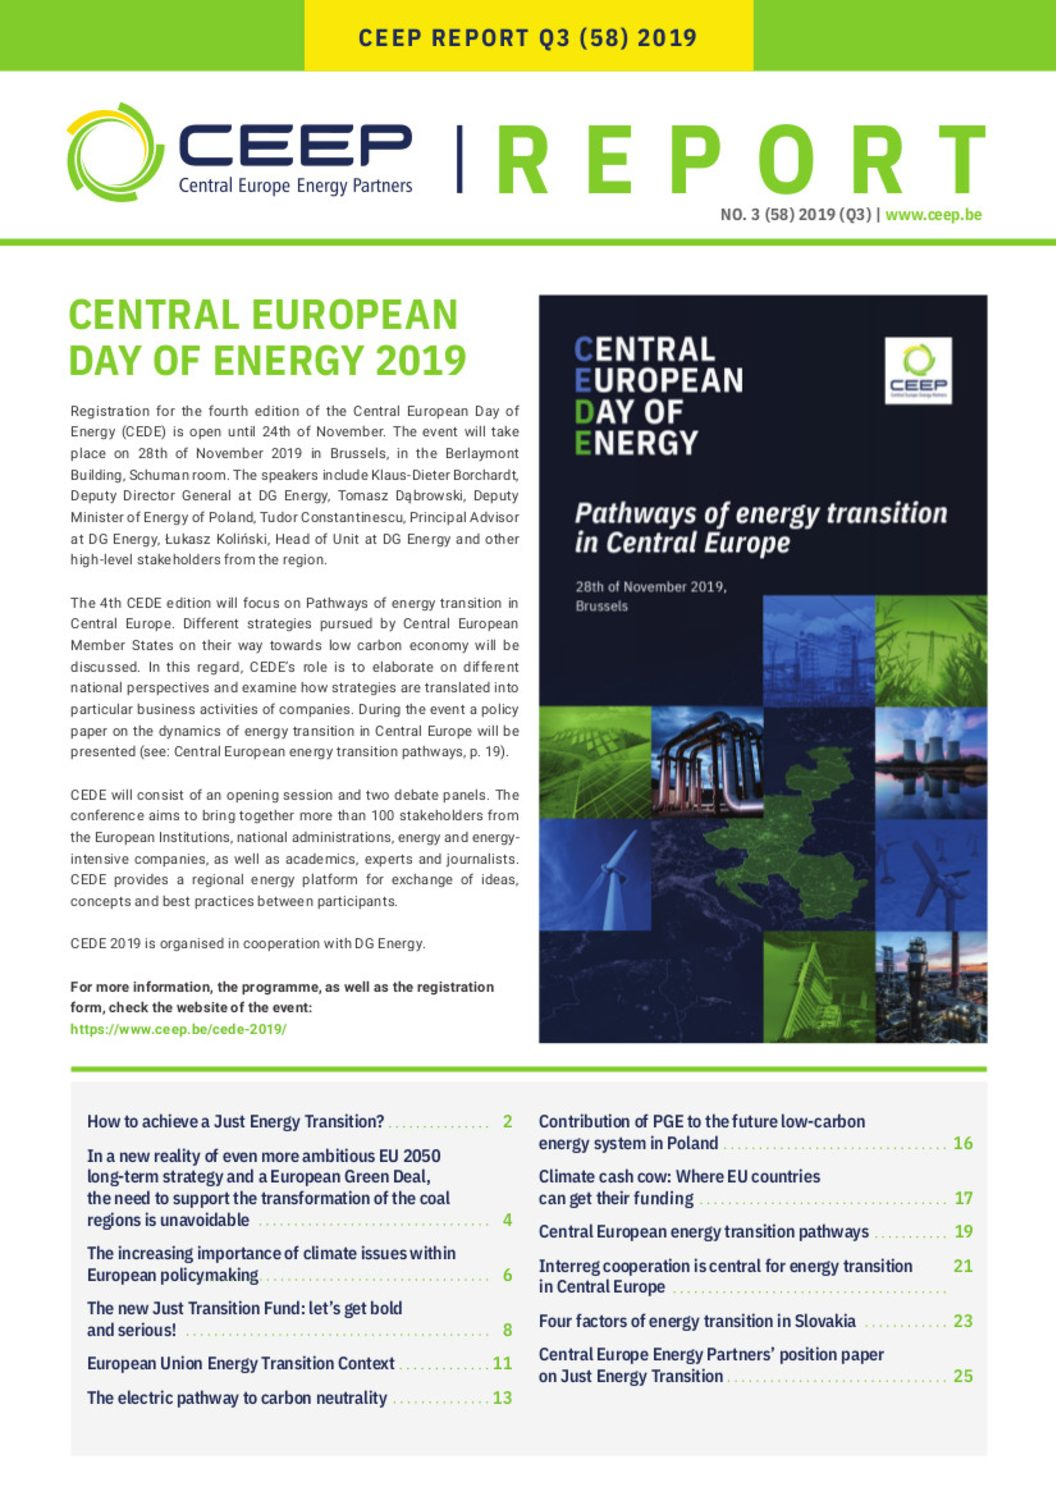 CEEP Report (Q3) 2019: Pathways of energy transition in Central Europe